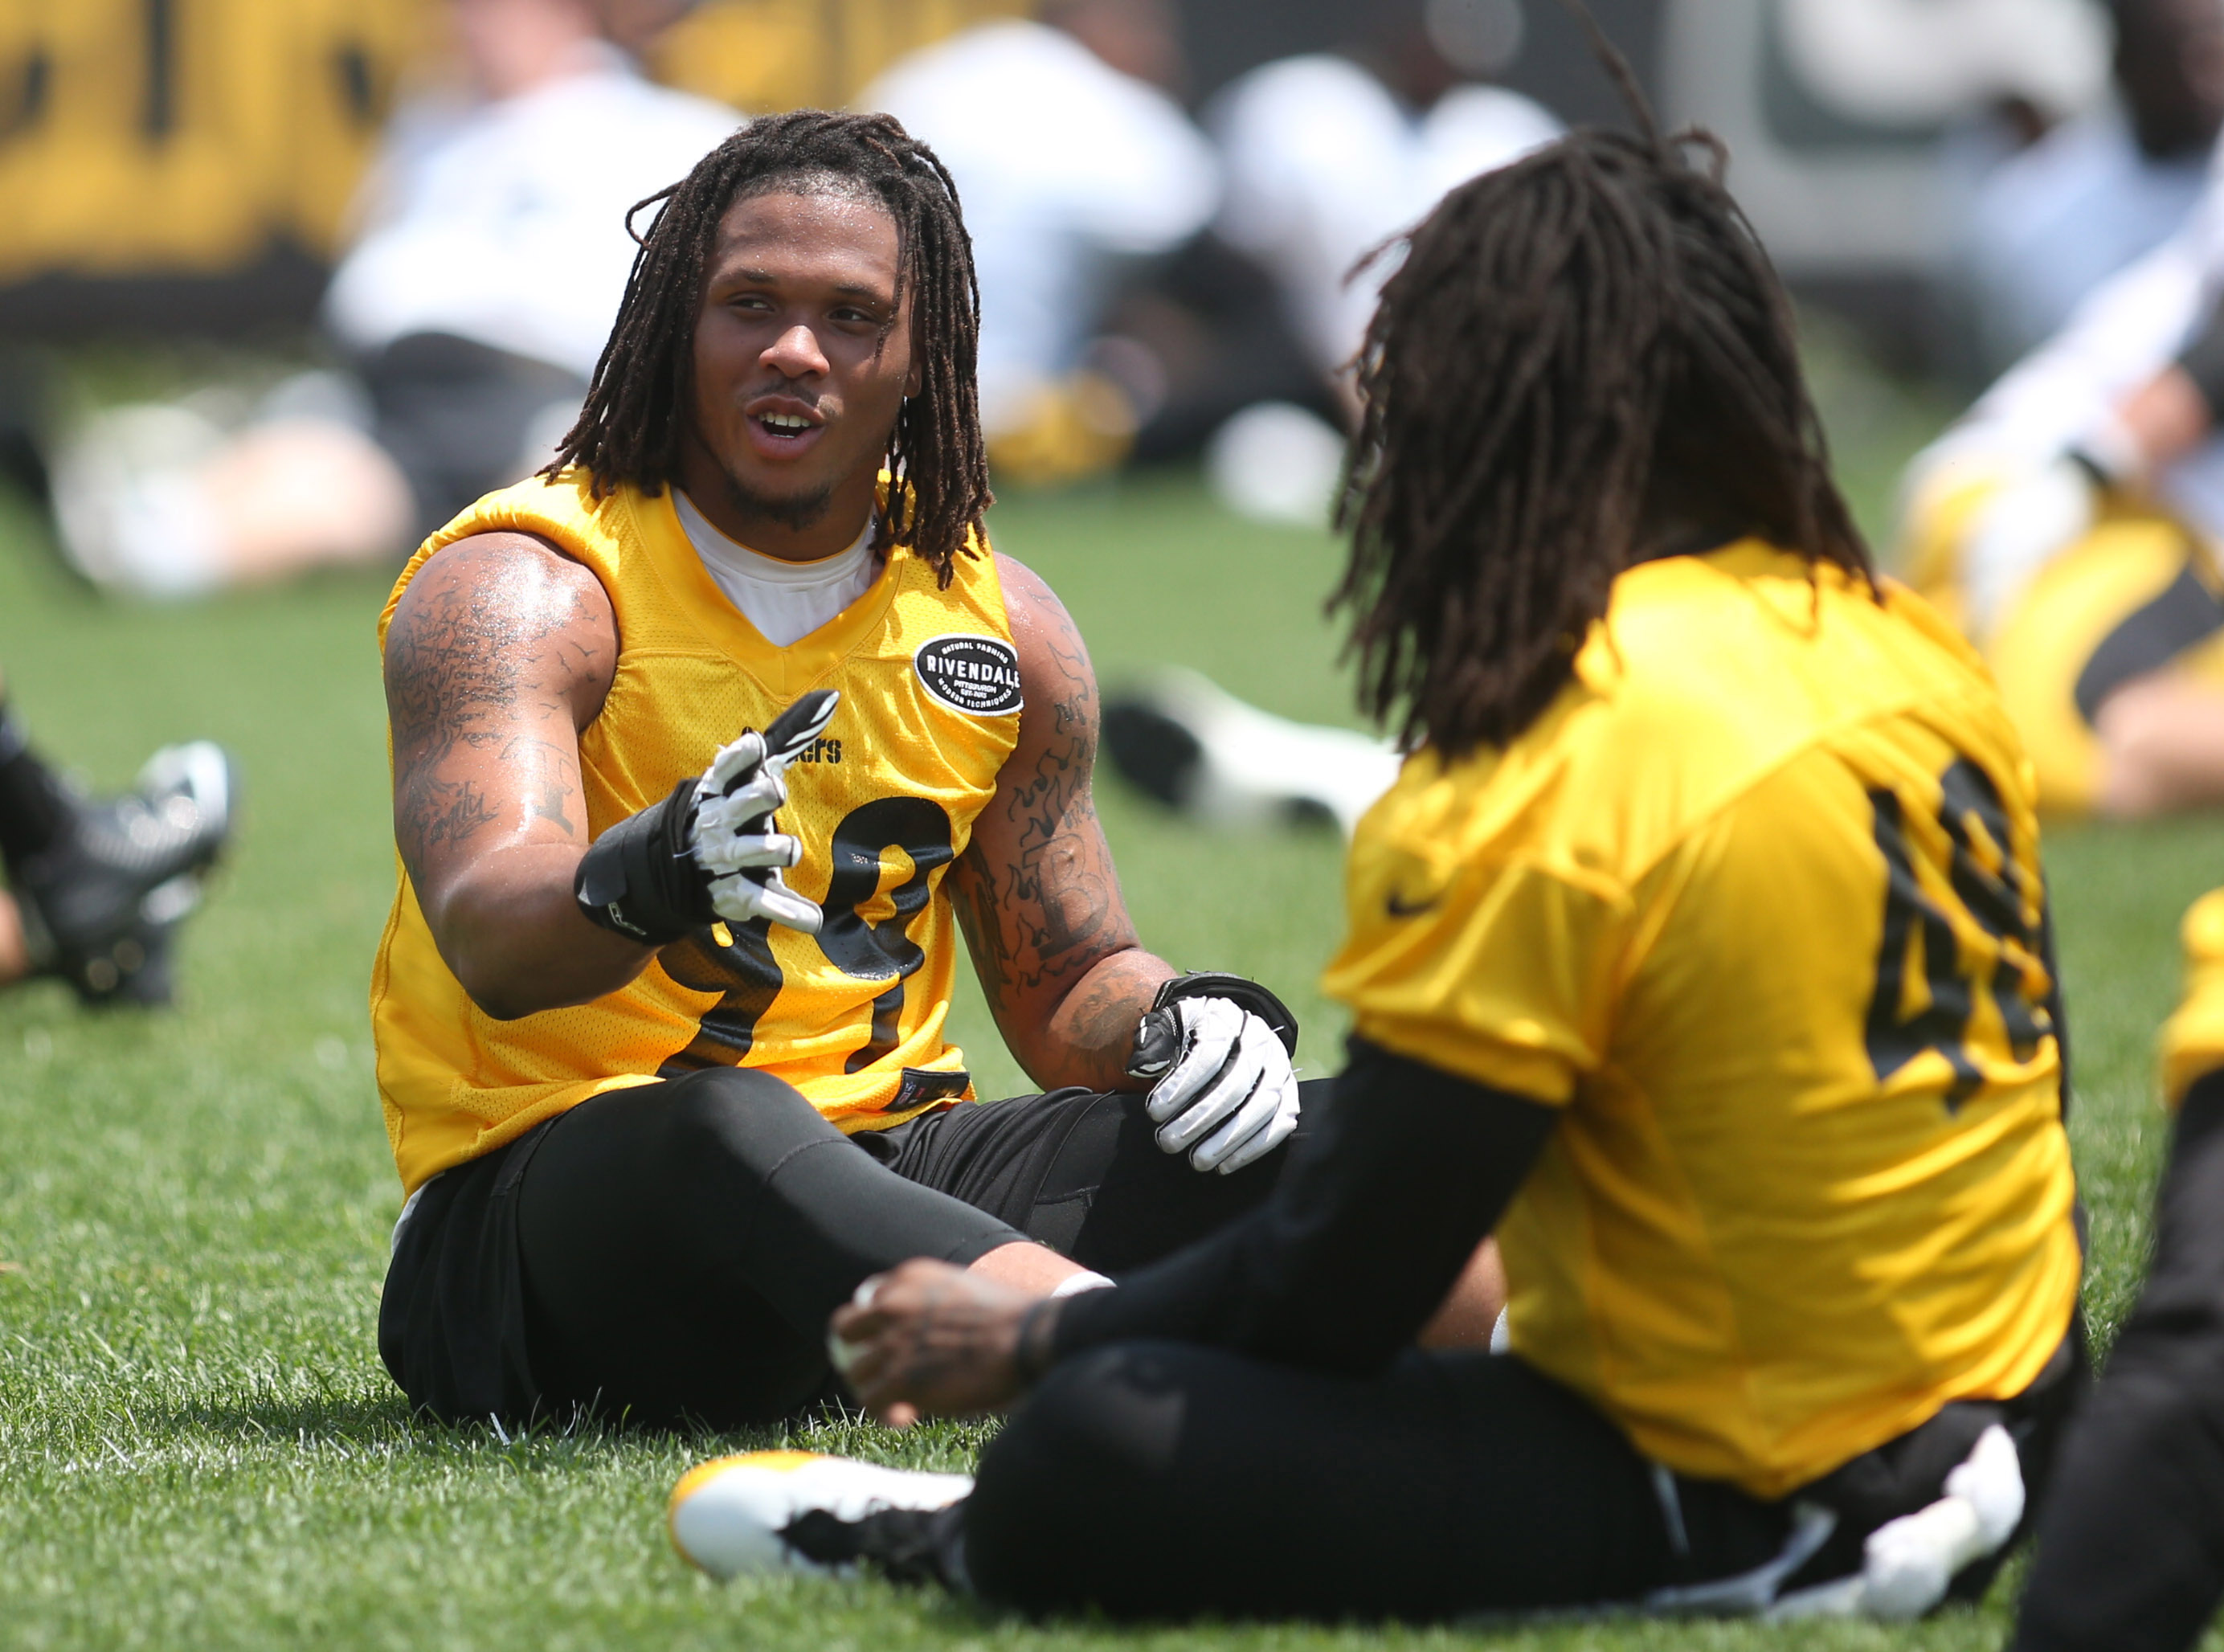 10107162-nfl-pittsburgh-steelers-minicamp